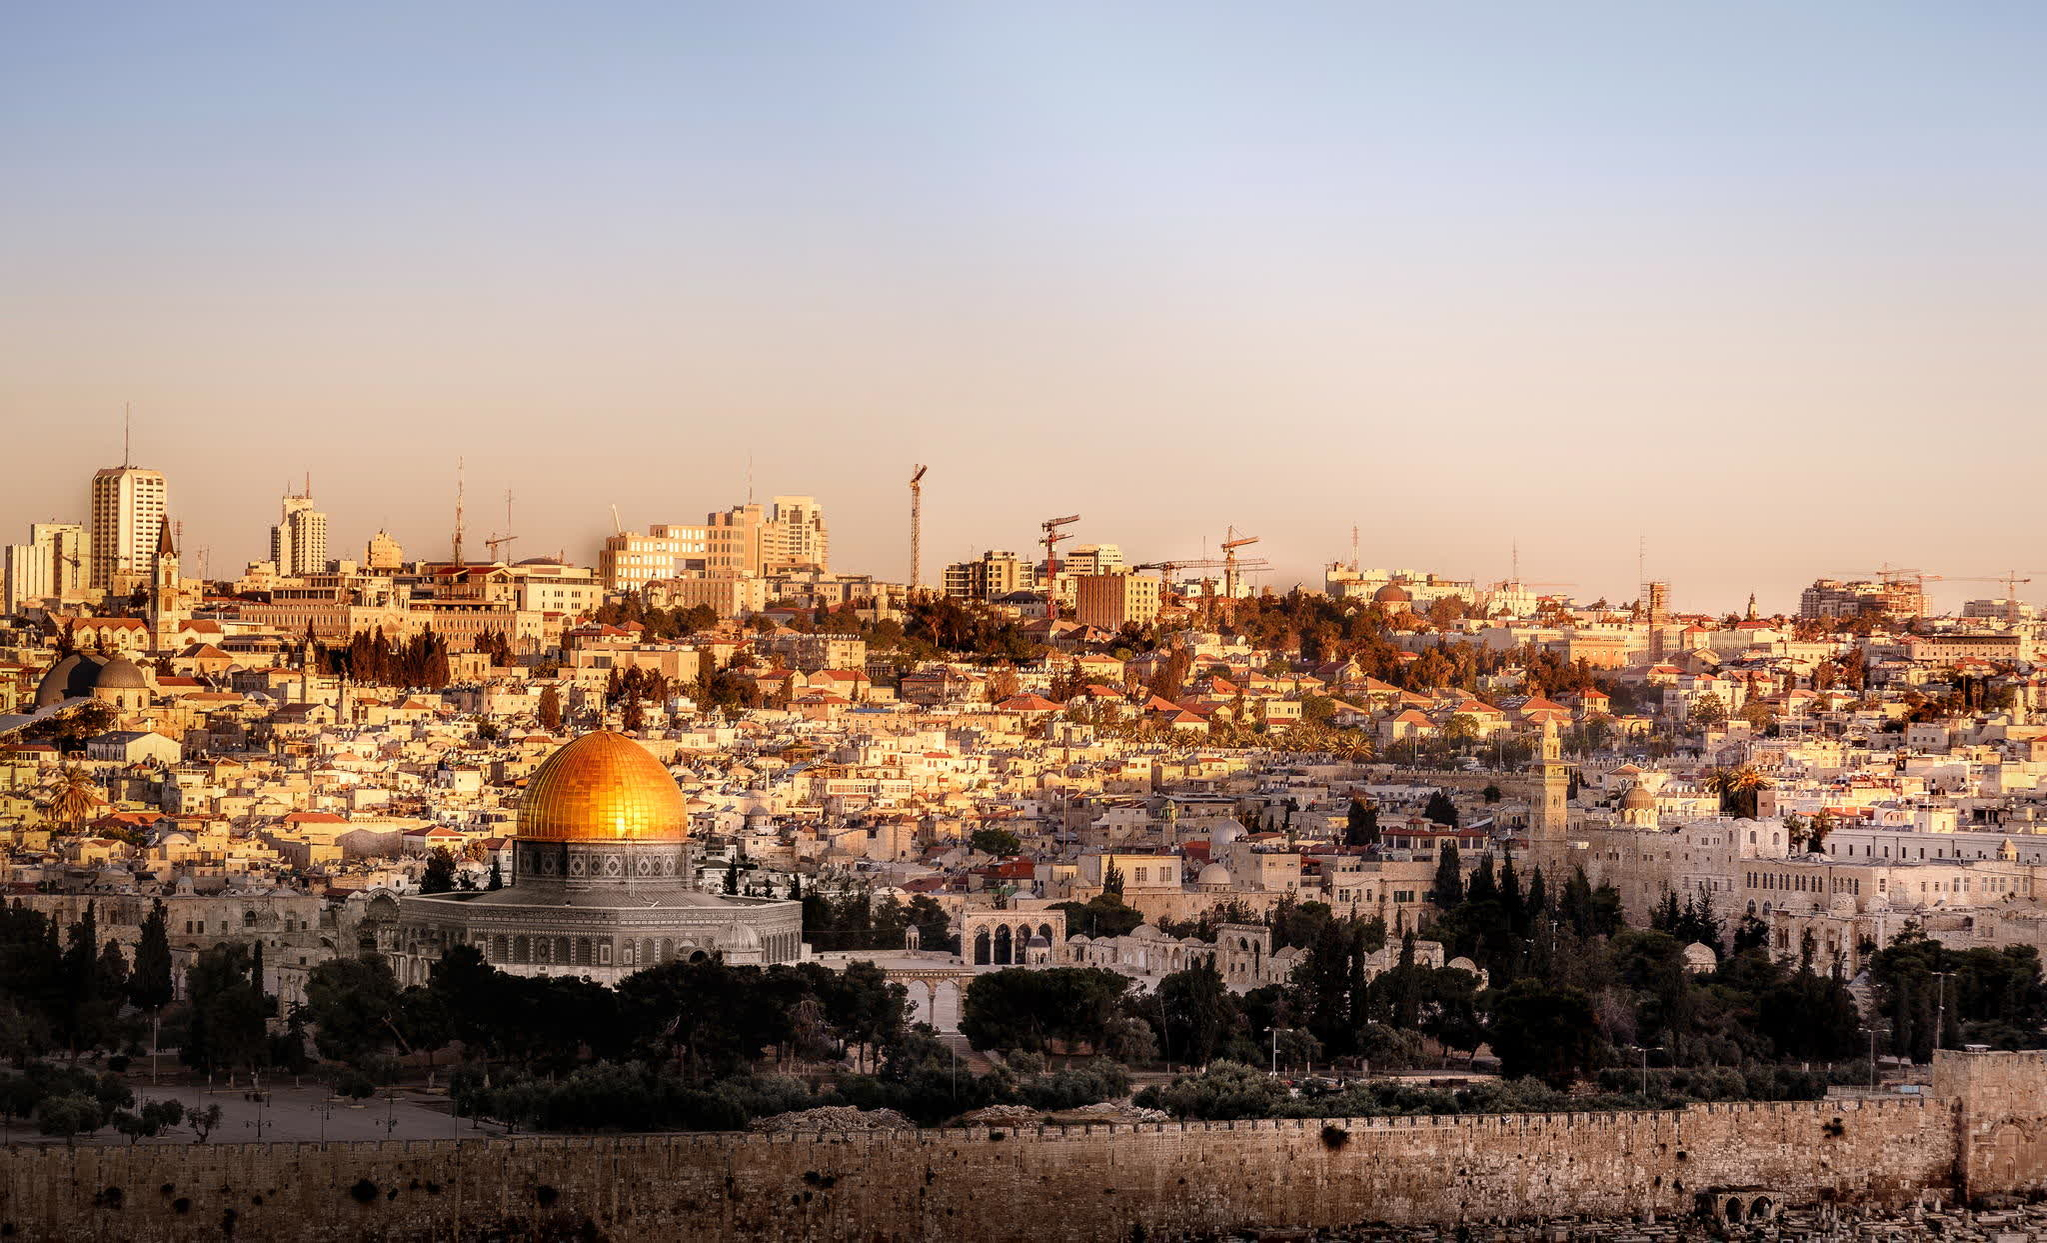 The status of Jerusalem remains a crucial issue in the ongoing Israel-Palestinian conflict